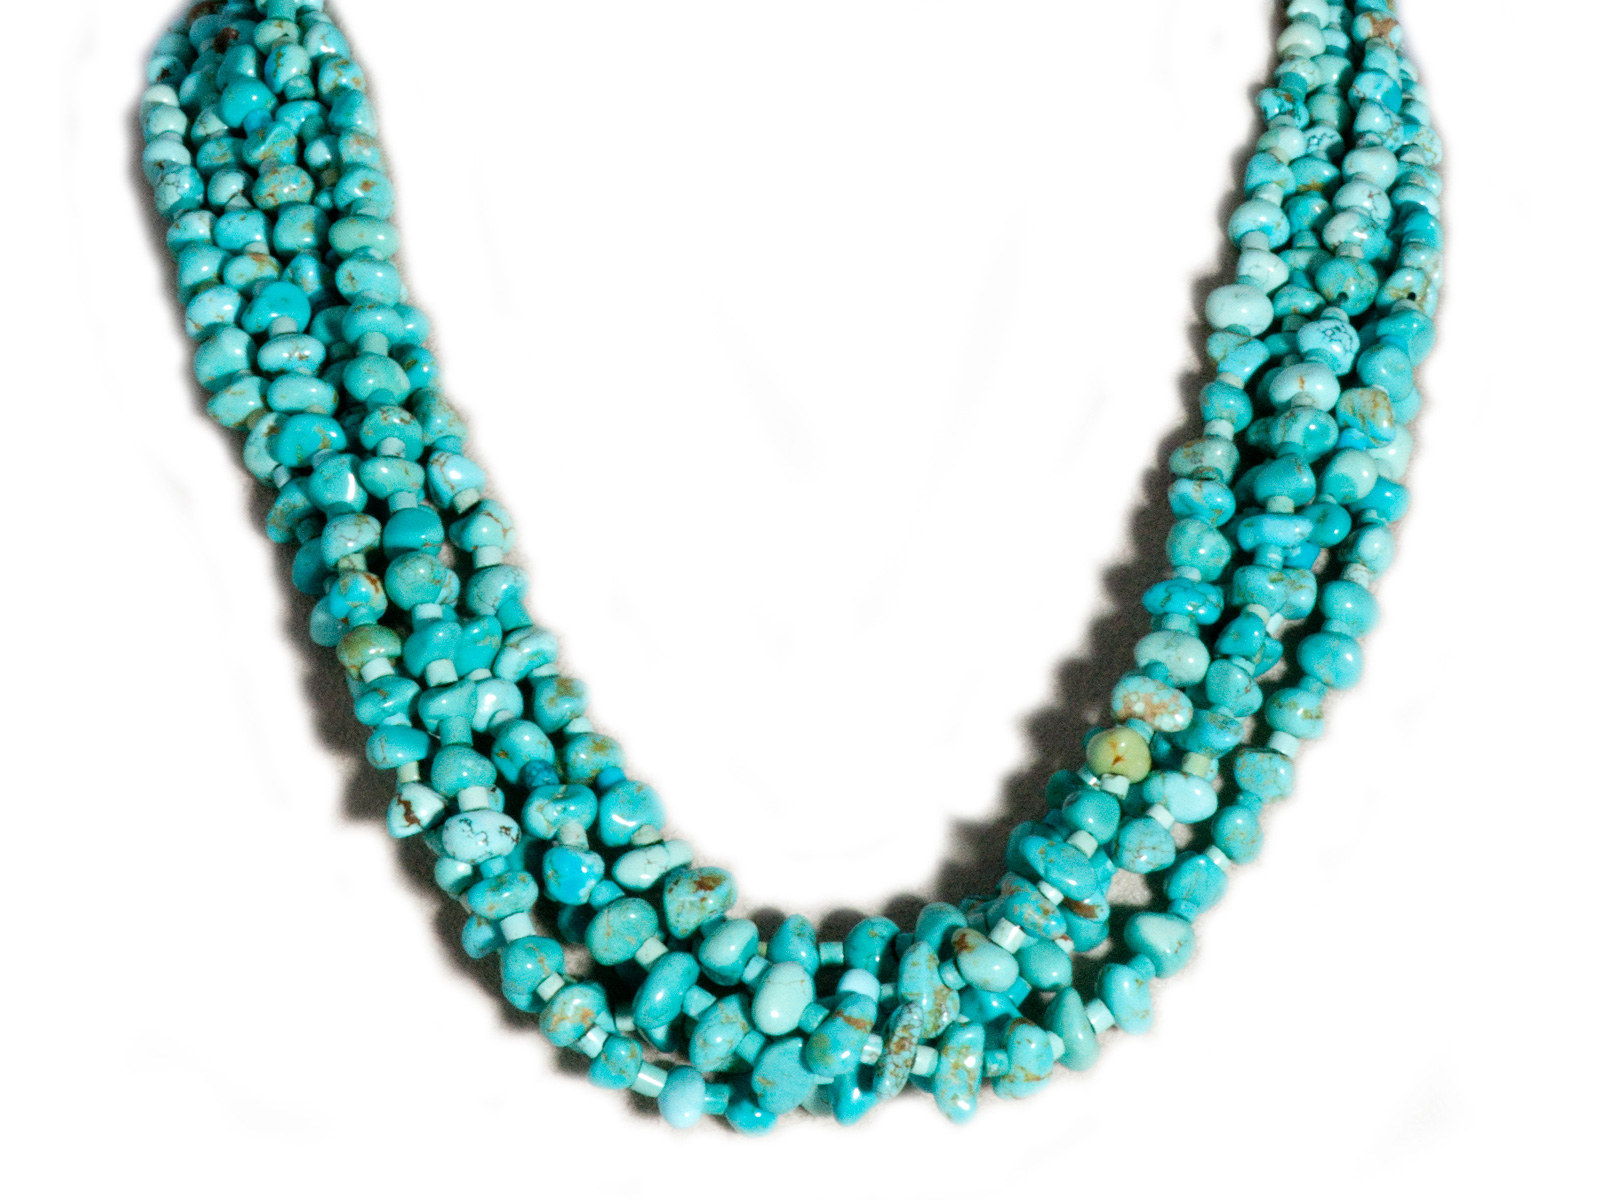 products jewelry necklace turquoise divine selena chloe cate layered womens necklaces